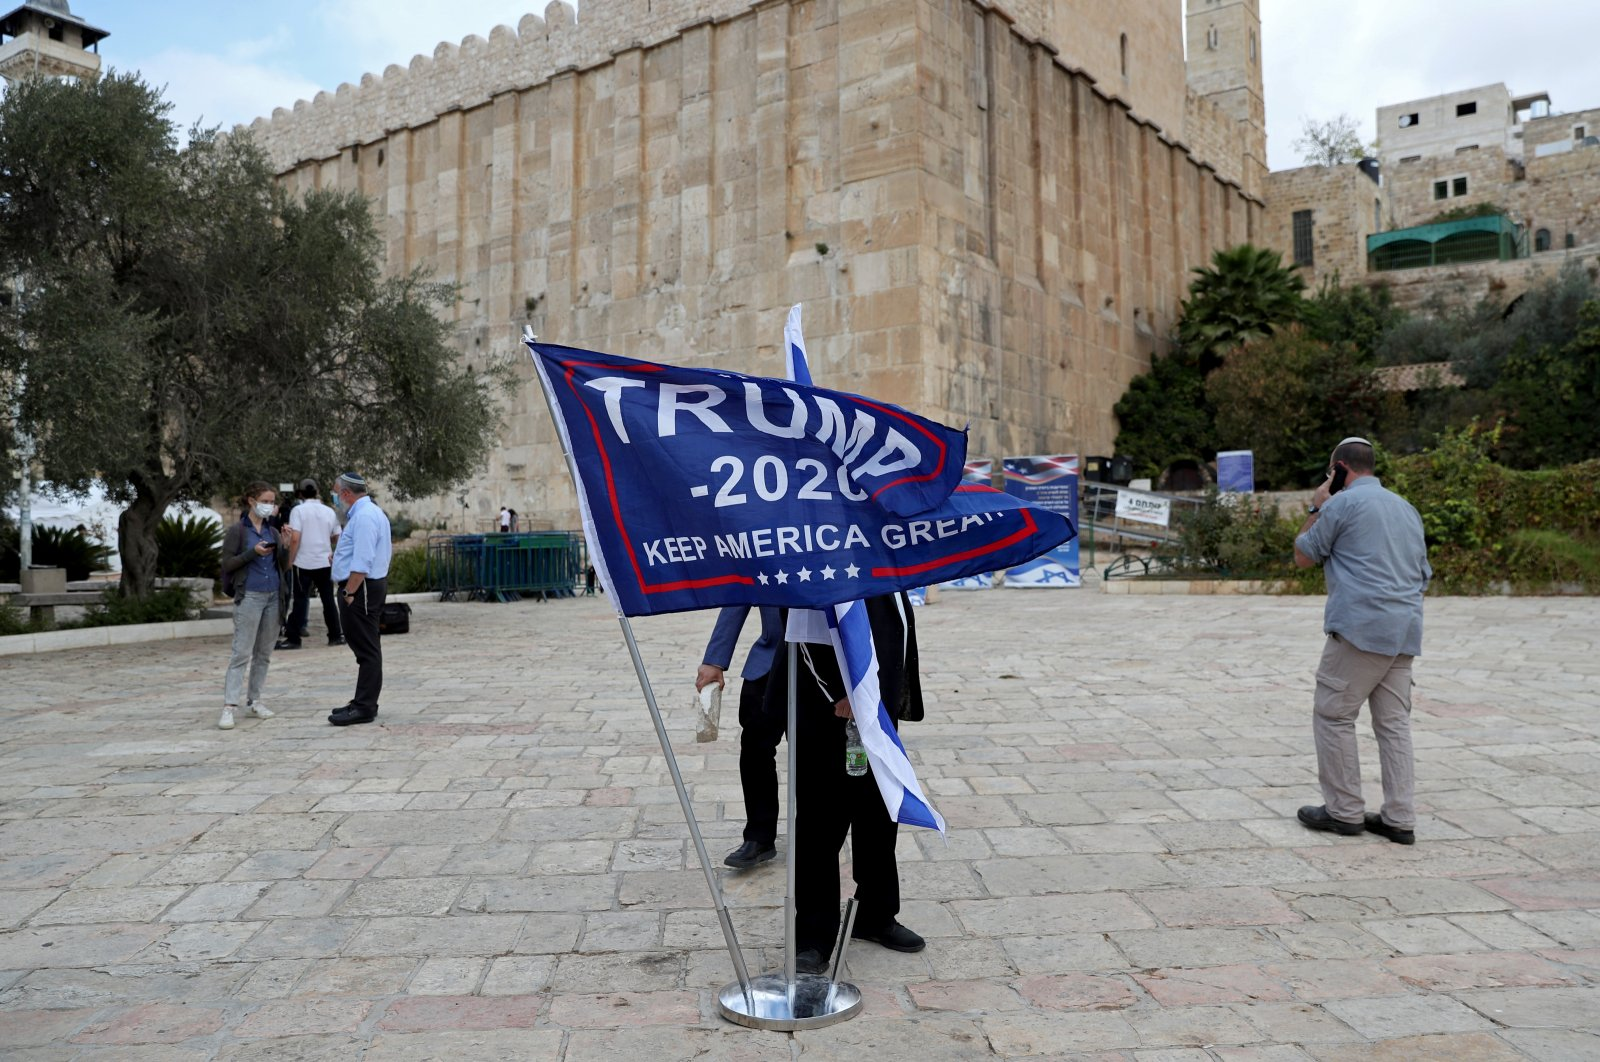 An Israeli settler adjusts a flag during a gathering to show support for U.S. President Donald Trump in the Israeli-occupied West Bank, Palestine, Nov. 2, 2020. (Reuters Photo)